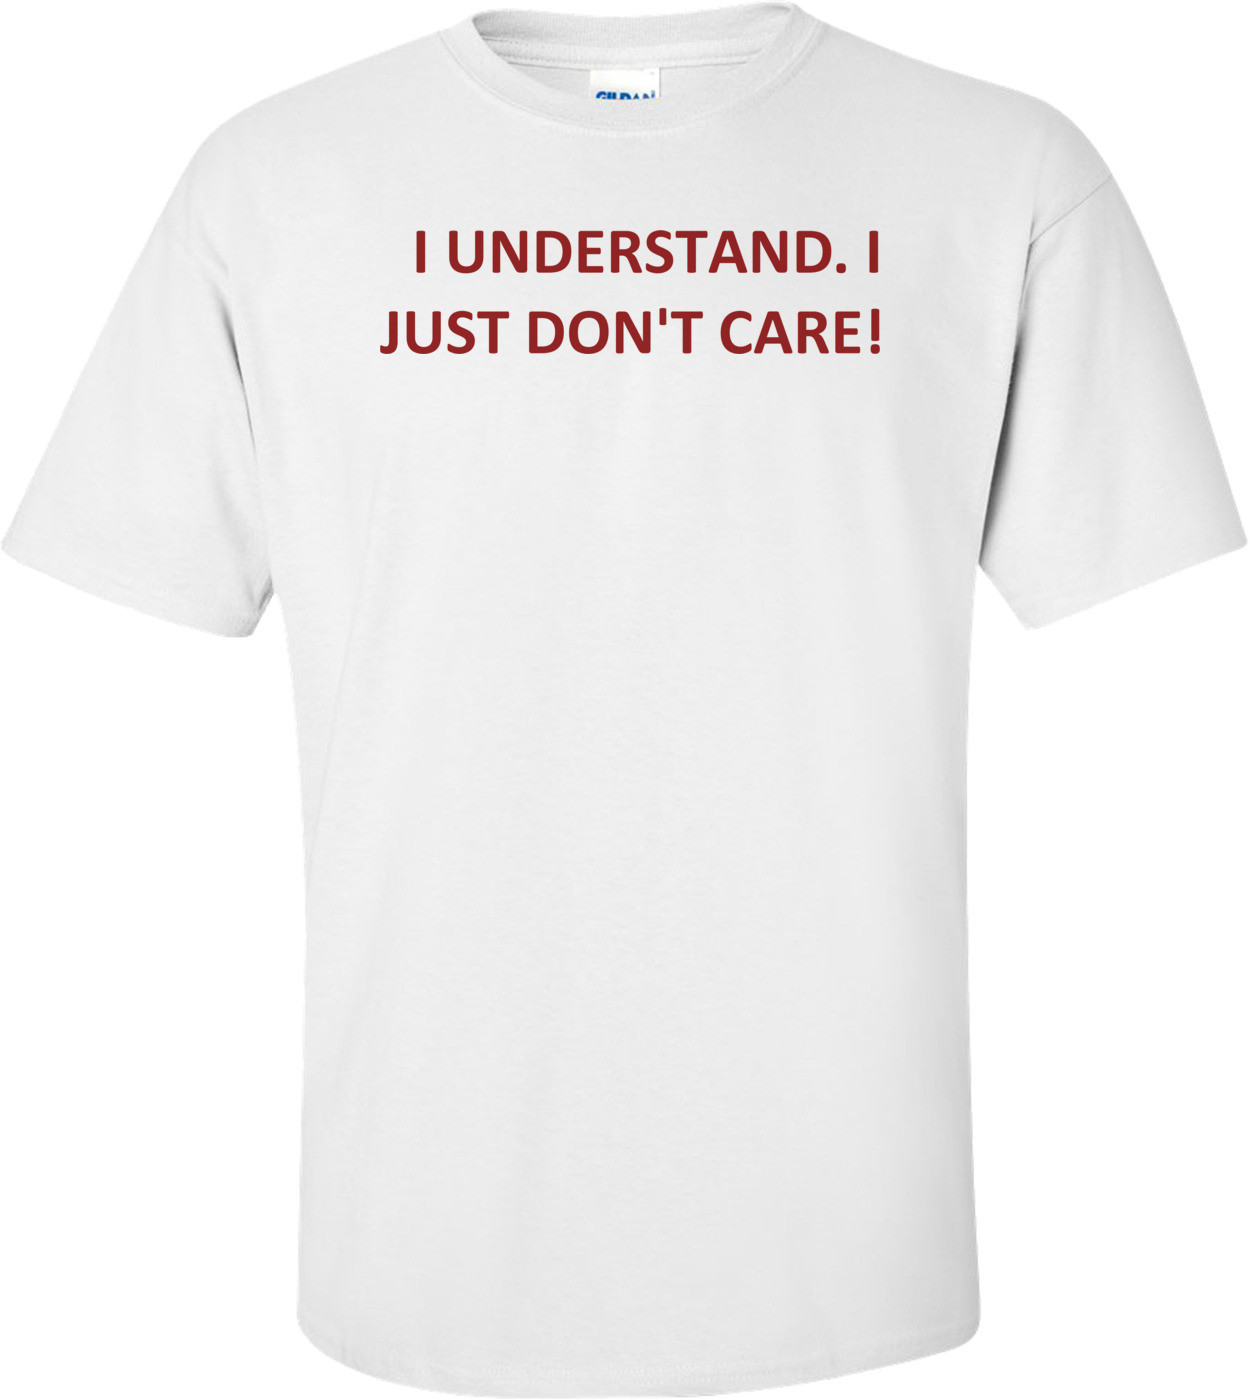 I UNDERSTAND. I JUST DON'T CARE! Shirt